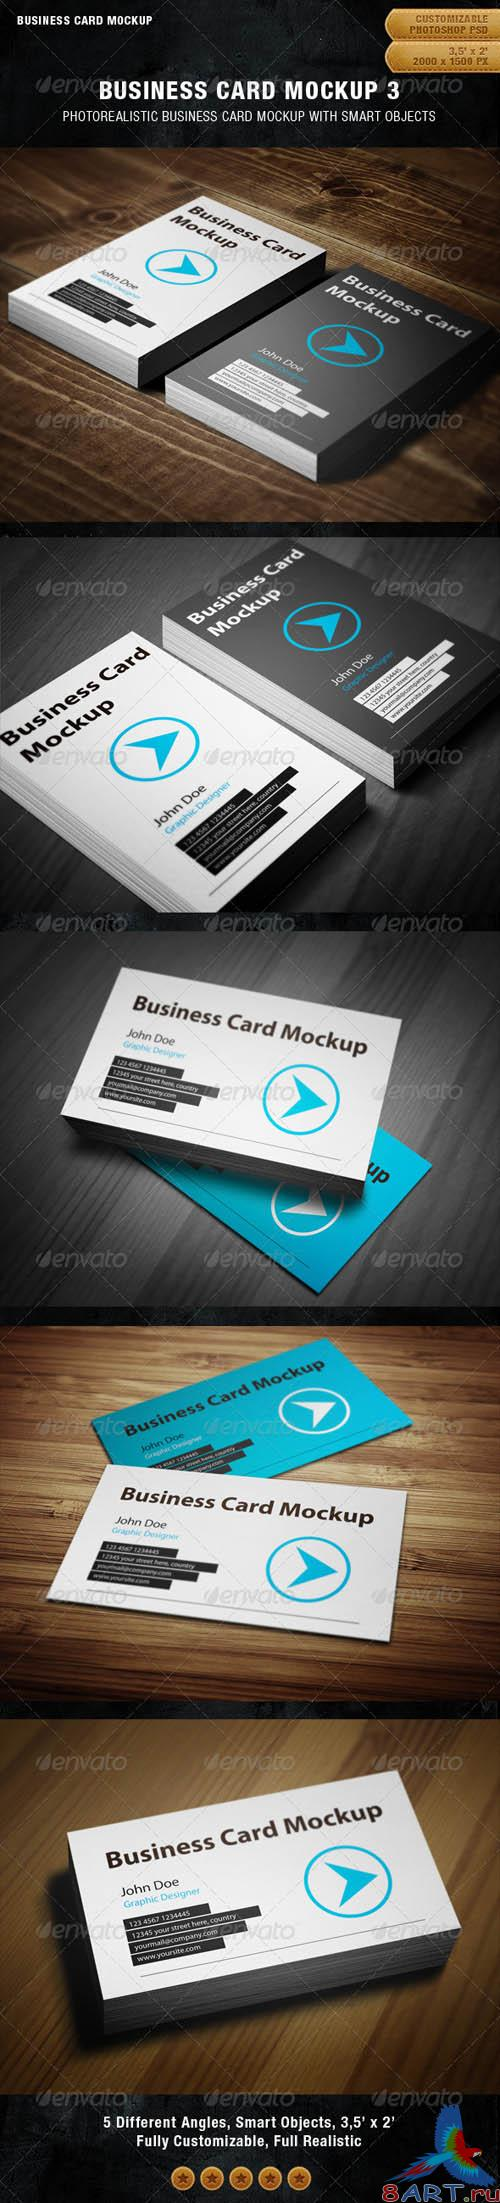 GraphicRiver Business Card Mockup 3 - REUPLOAD